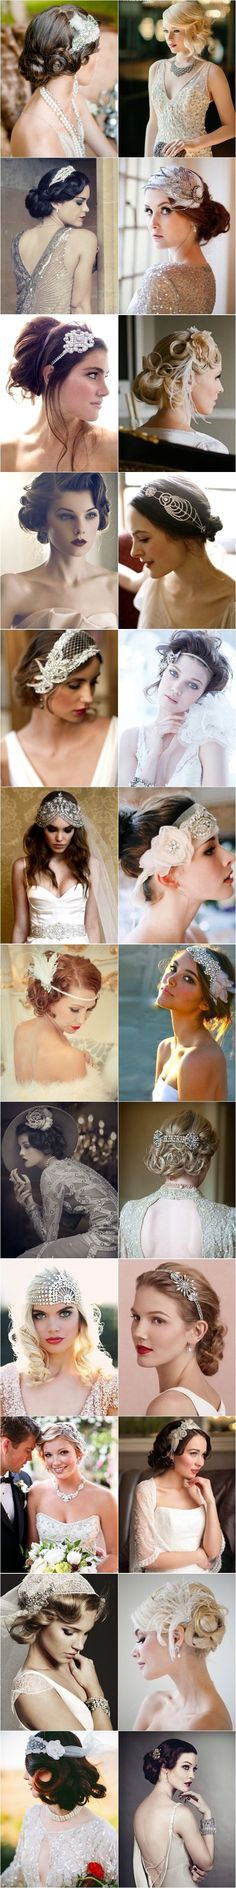 """""""Wedding Philippines - Gatsby Glam Inspired Hairstyles"""" Tons of ideas for our hair for your future Gatsby-themed wedding! Lol Wedding Philippines - Gatsby Glam Inspired Hairstyles Tons of ideas for our hair for your future Gatsby-themed wedding! Gatsby Wedding, Glamorous Wedding, Wedding Updo, Gatsby Party, Wedding Vintage, 1920s Party, Gatsby Theme, Gatsby Style, Trendy Wedding"""